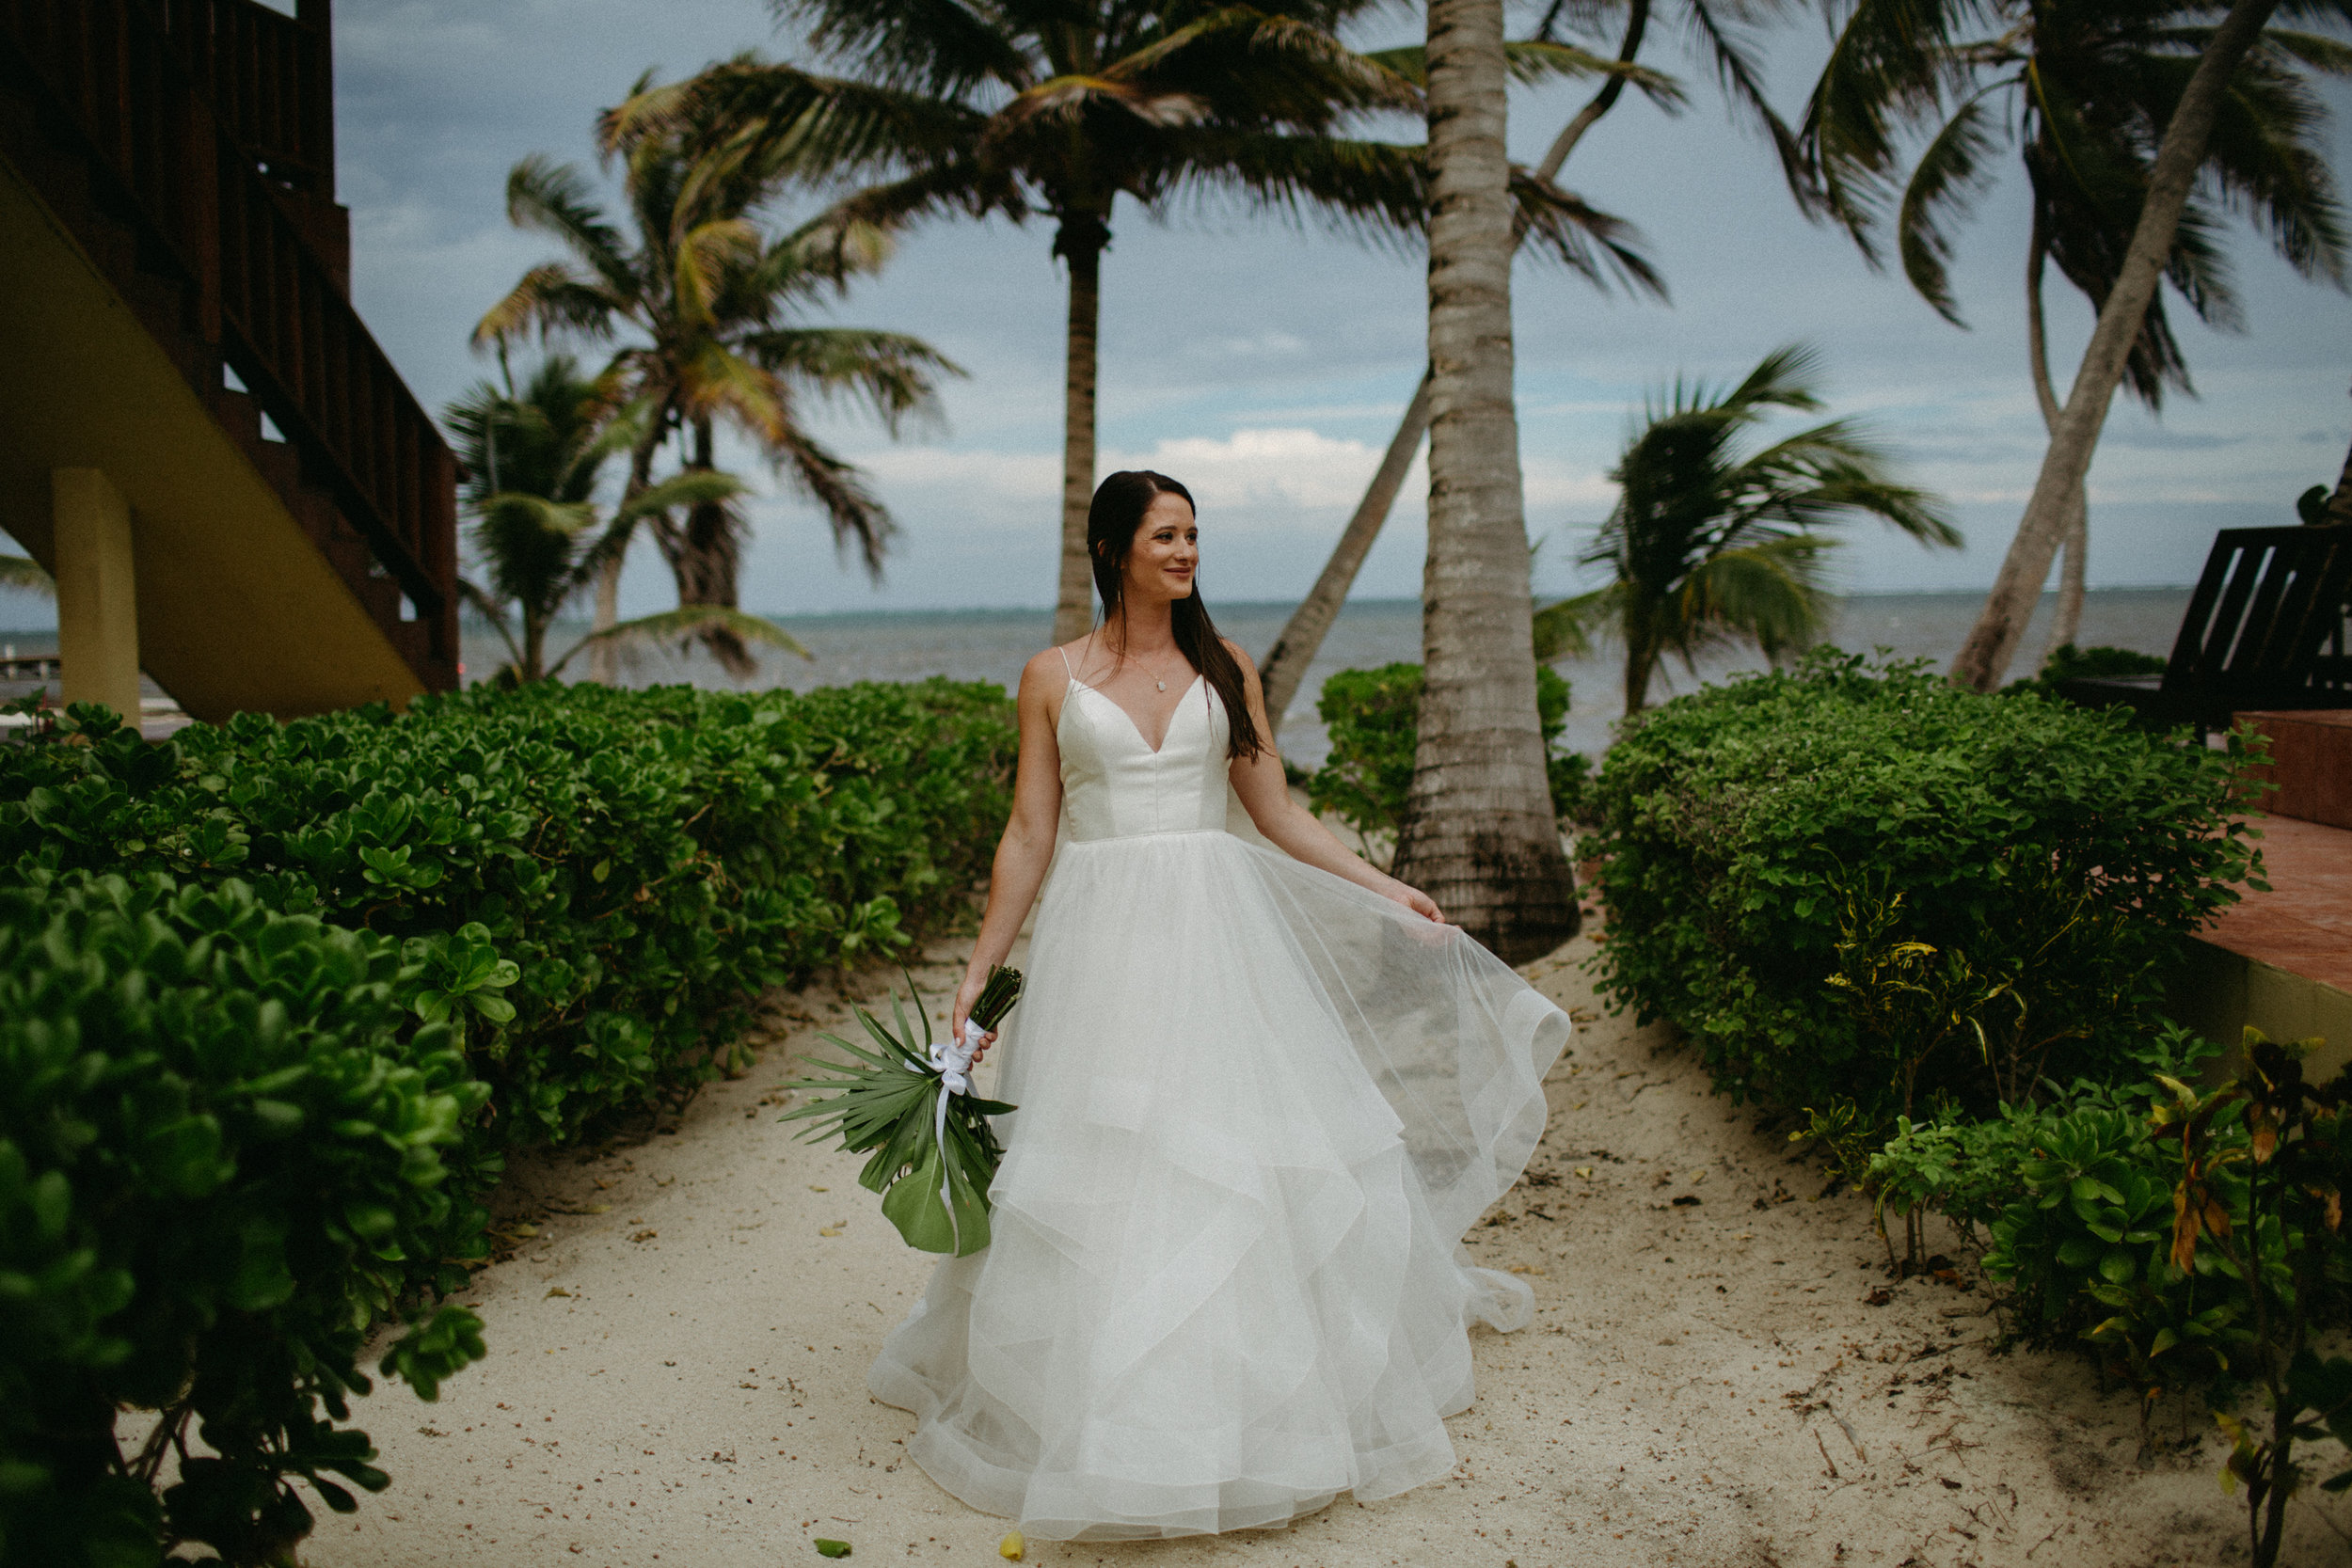 san-pescador-belize-wedding-christinemariephoto-j-k-65.jpg